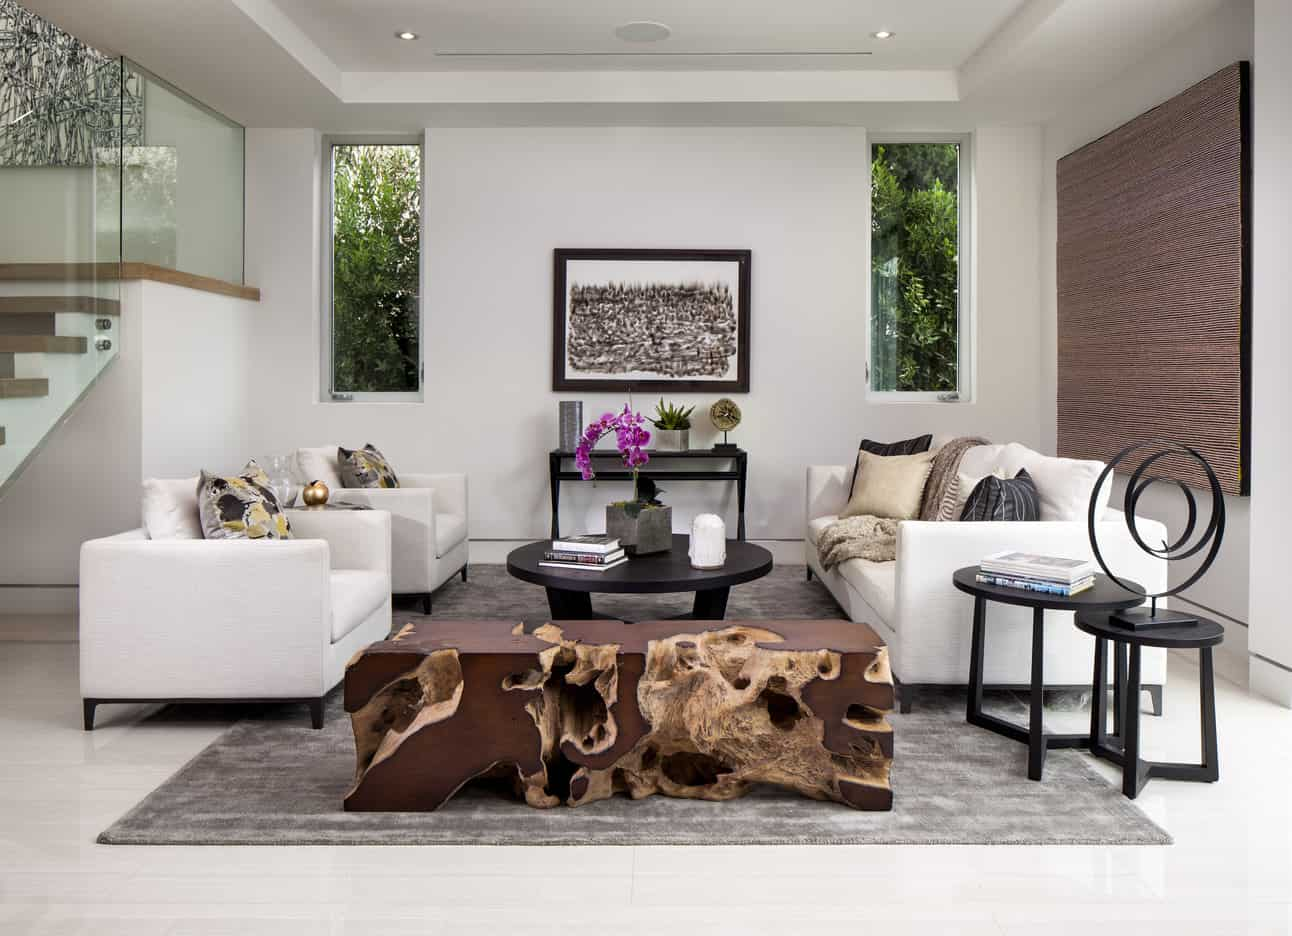 Architecture-Contemporary-Home-Noesis Group-04-1 Kindesign